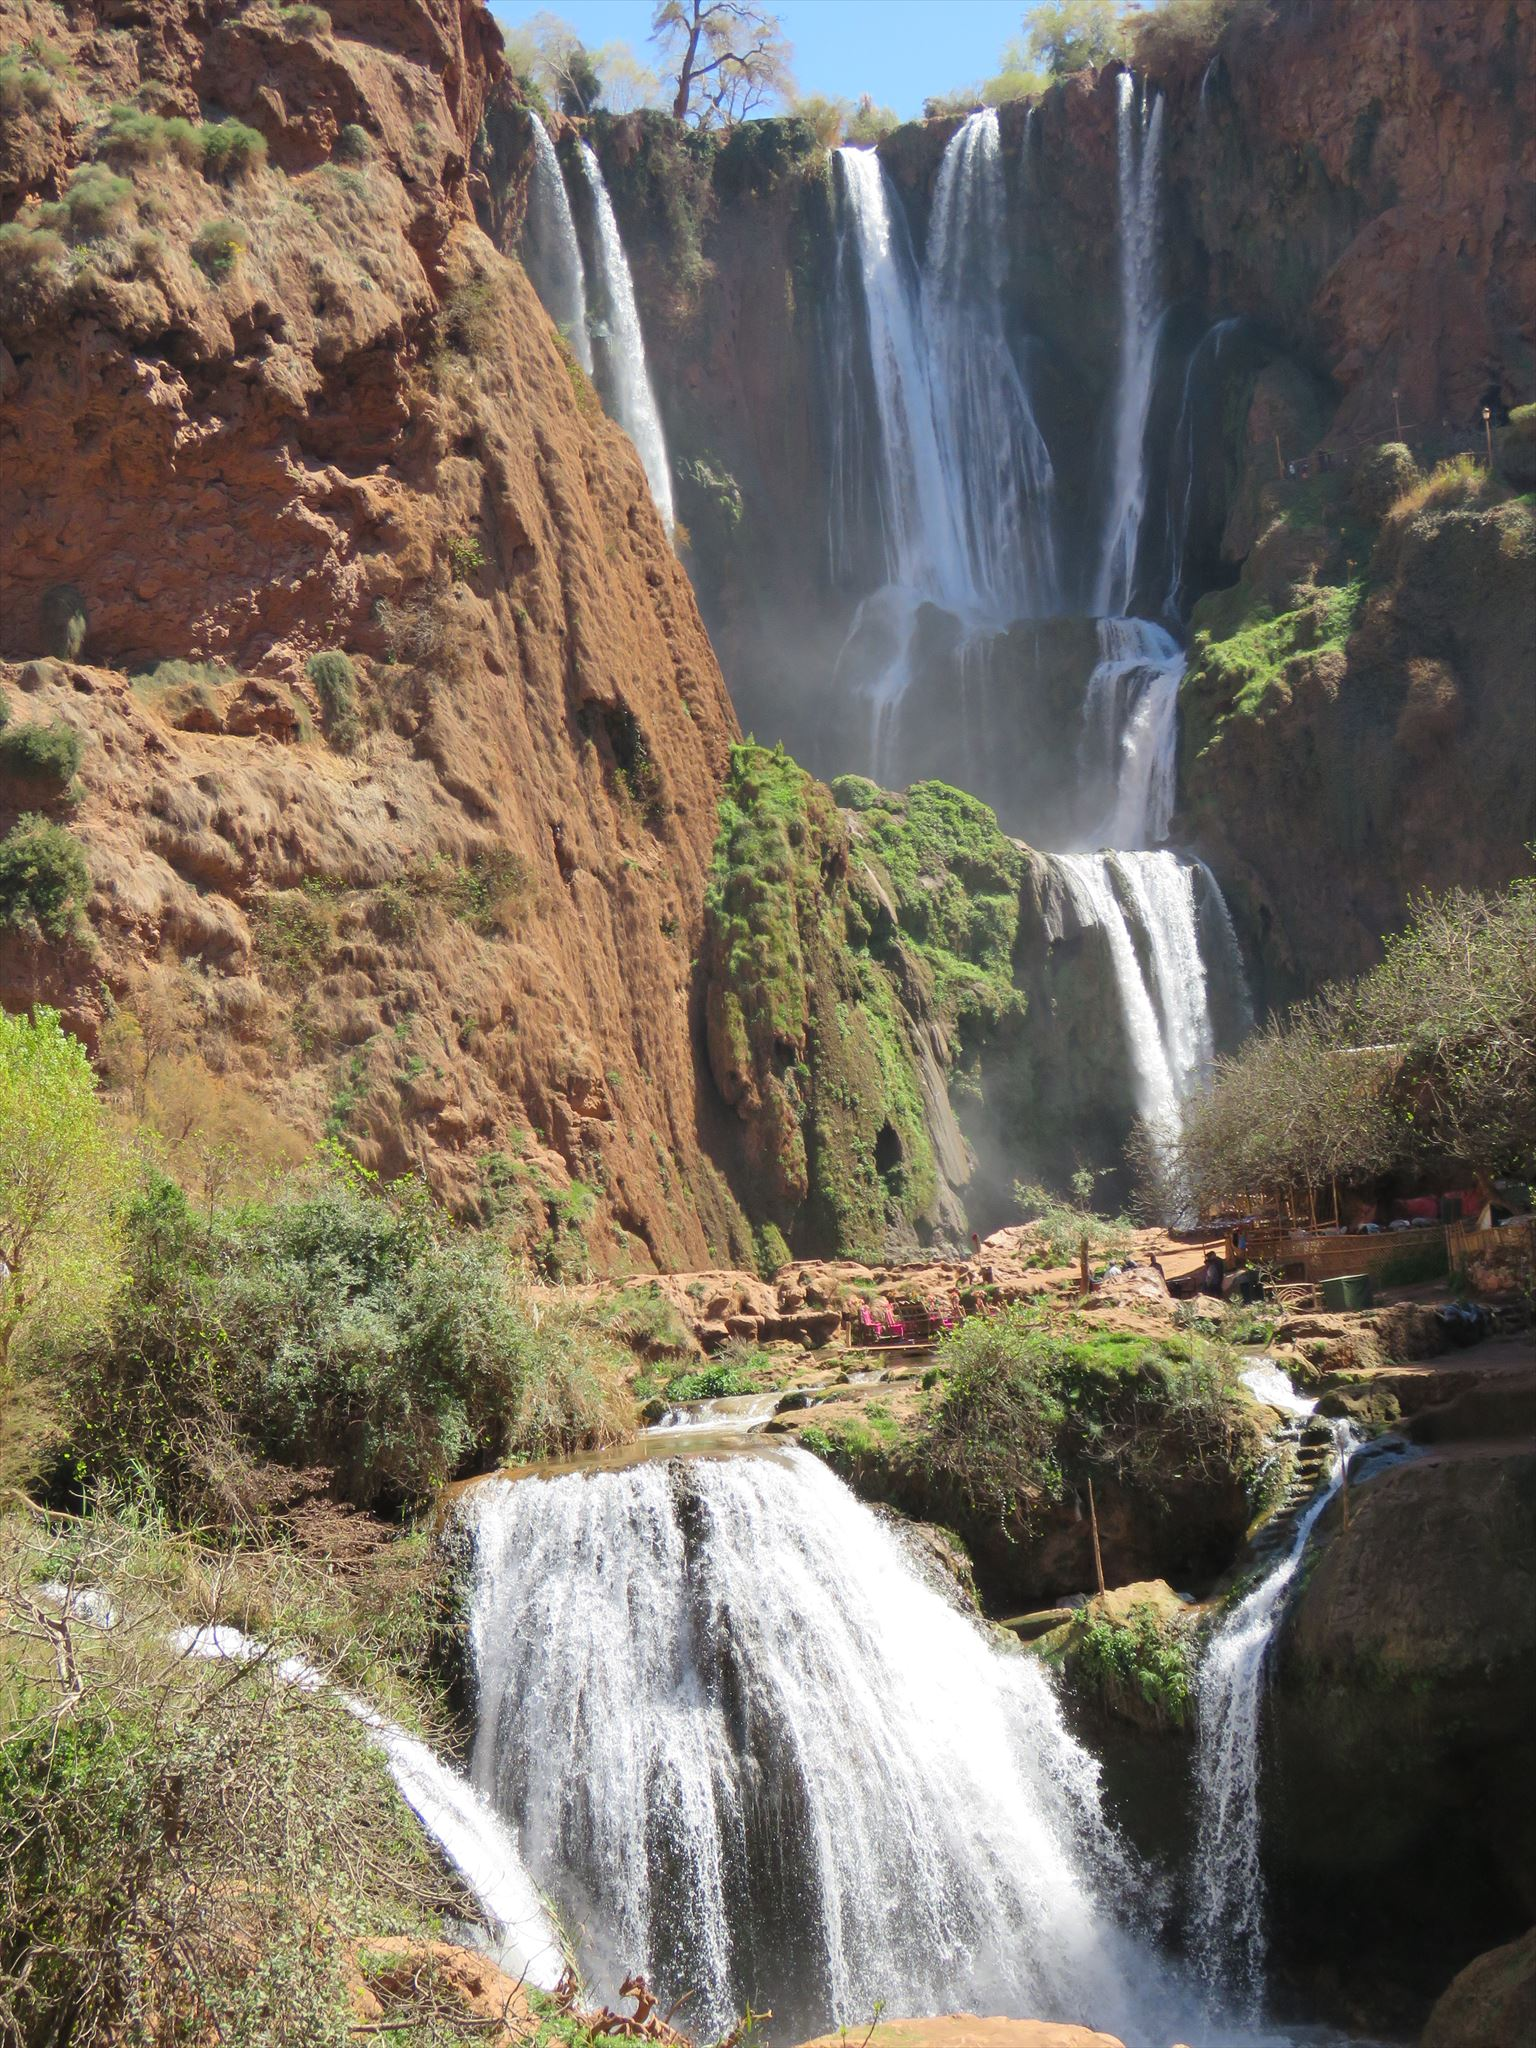 The Ouzoud Waterfalls — Geocache of the Week